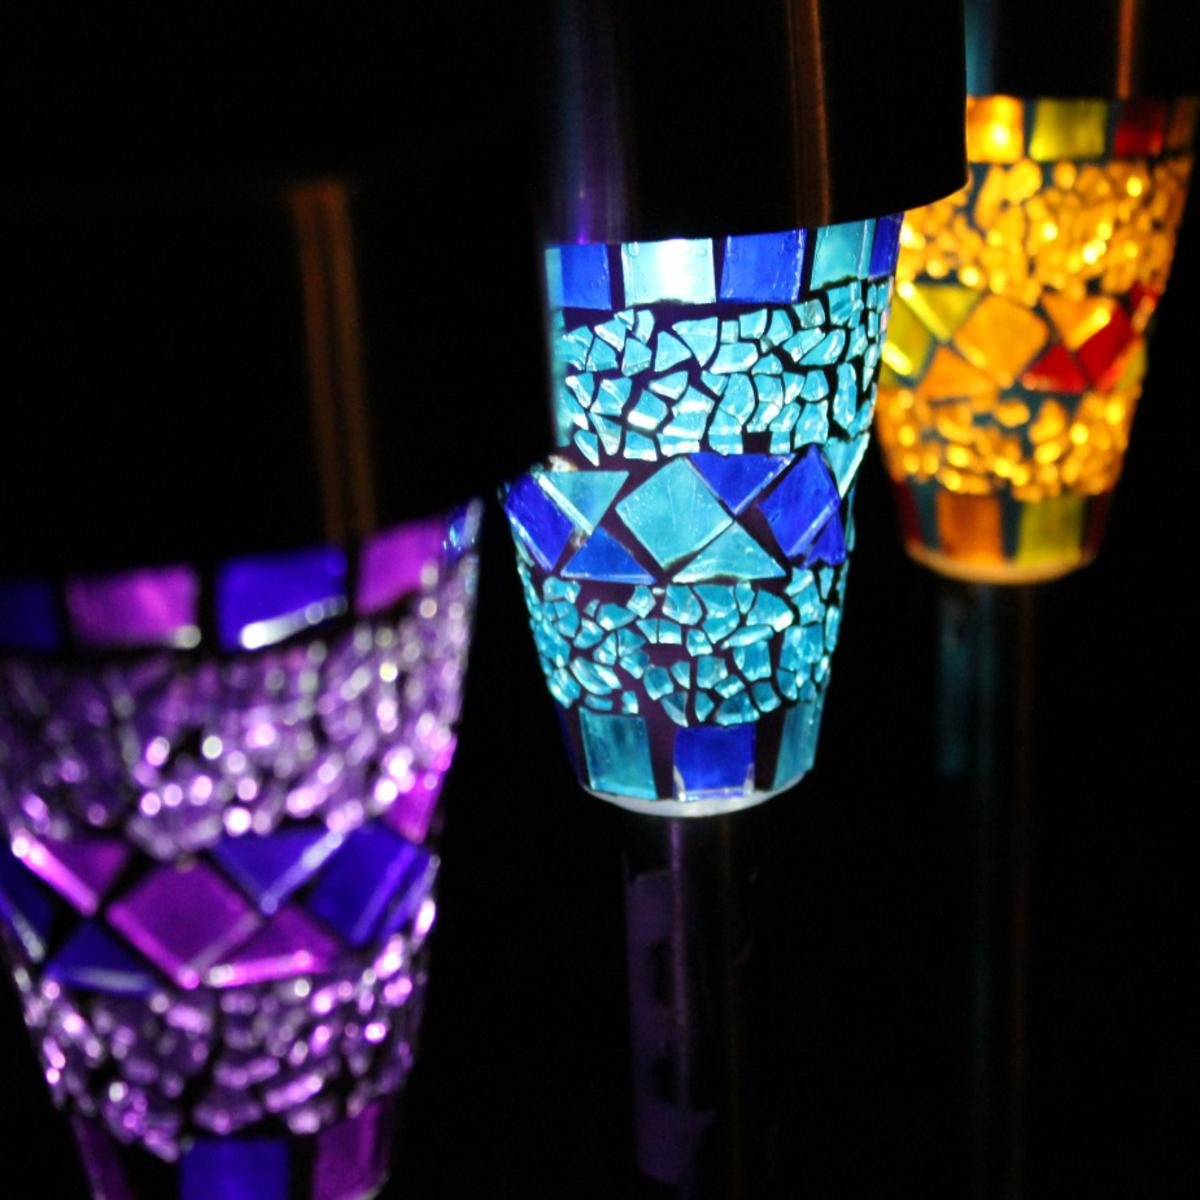 Direct Global Solar Mosaic Lights For The Garden With Plugs Pack Of 6 Amazon Co Uk Garden Outdoors